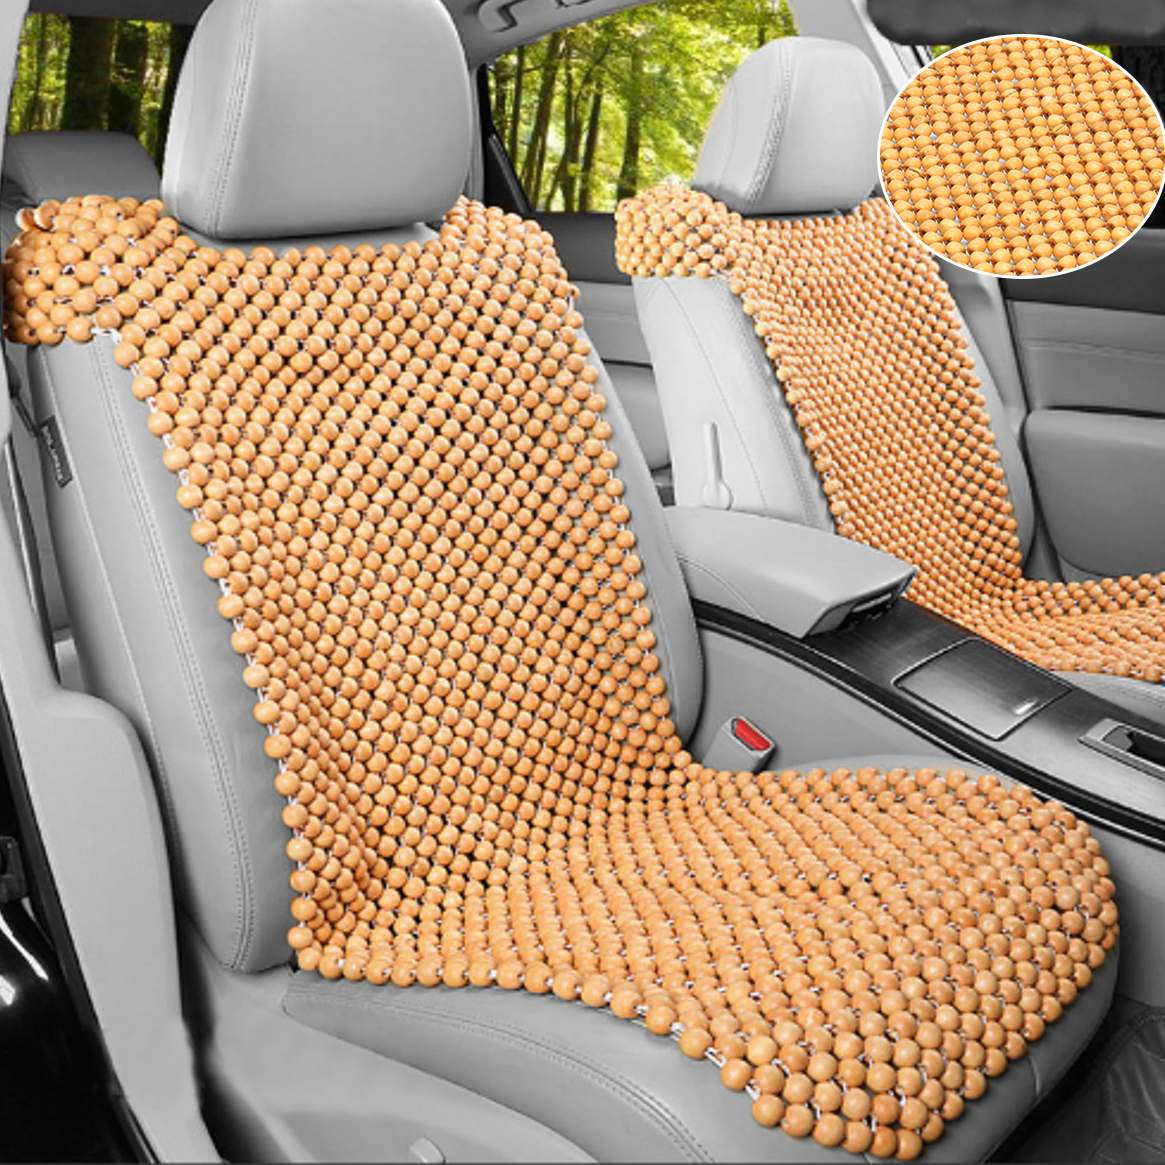 Aliexpress Buy 1x Automobiles Car Seat Covers Universal Wood Wooden Beaded Home Chair Cover Massage Cool Cushion From Reliable